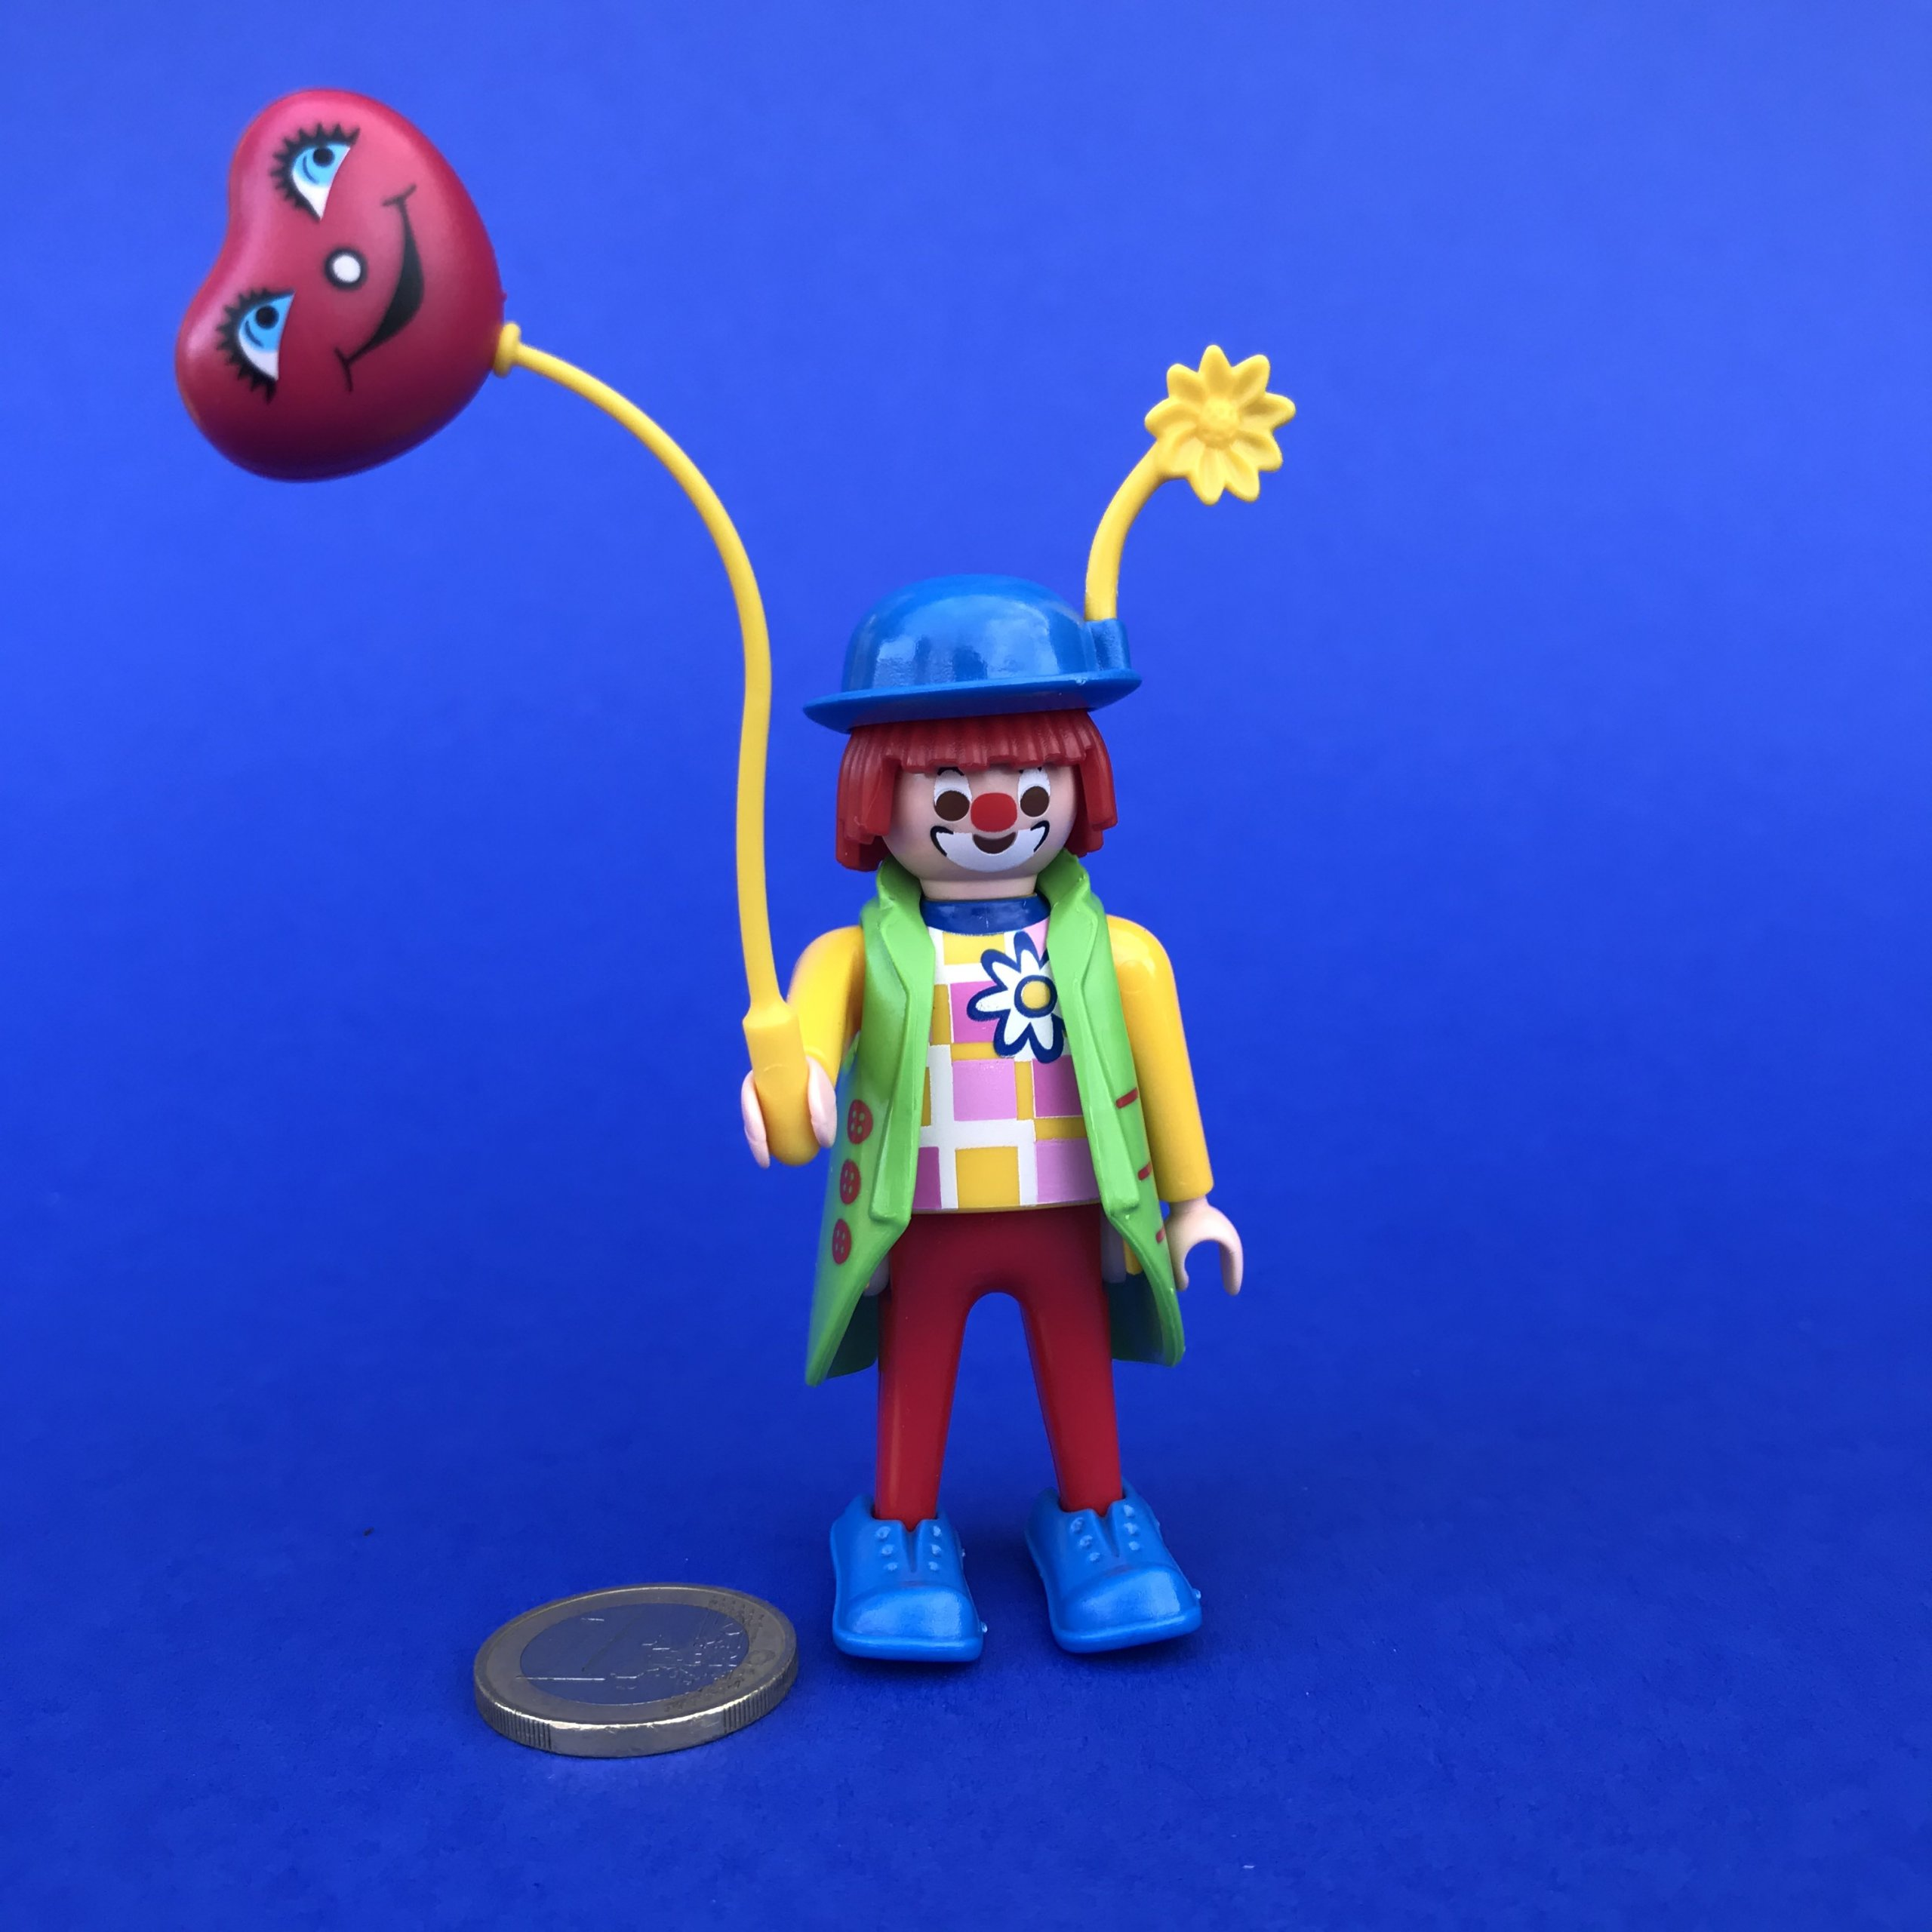 Playmobil clown